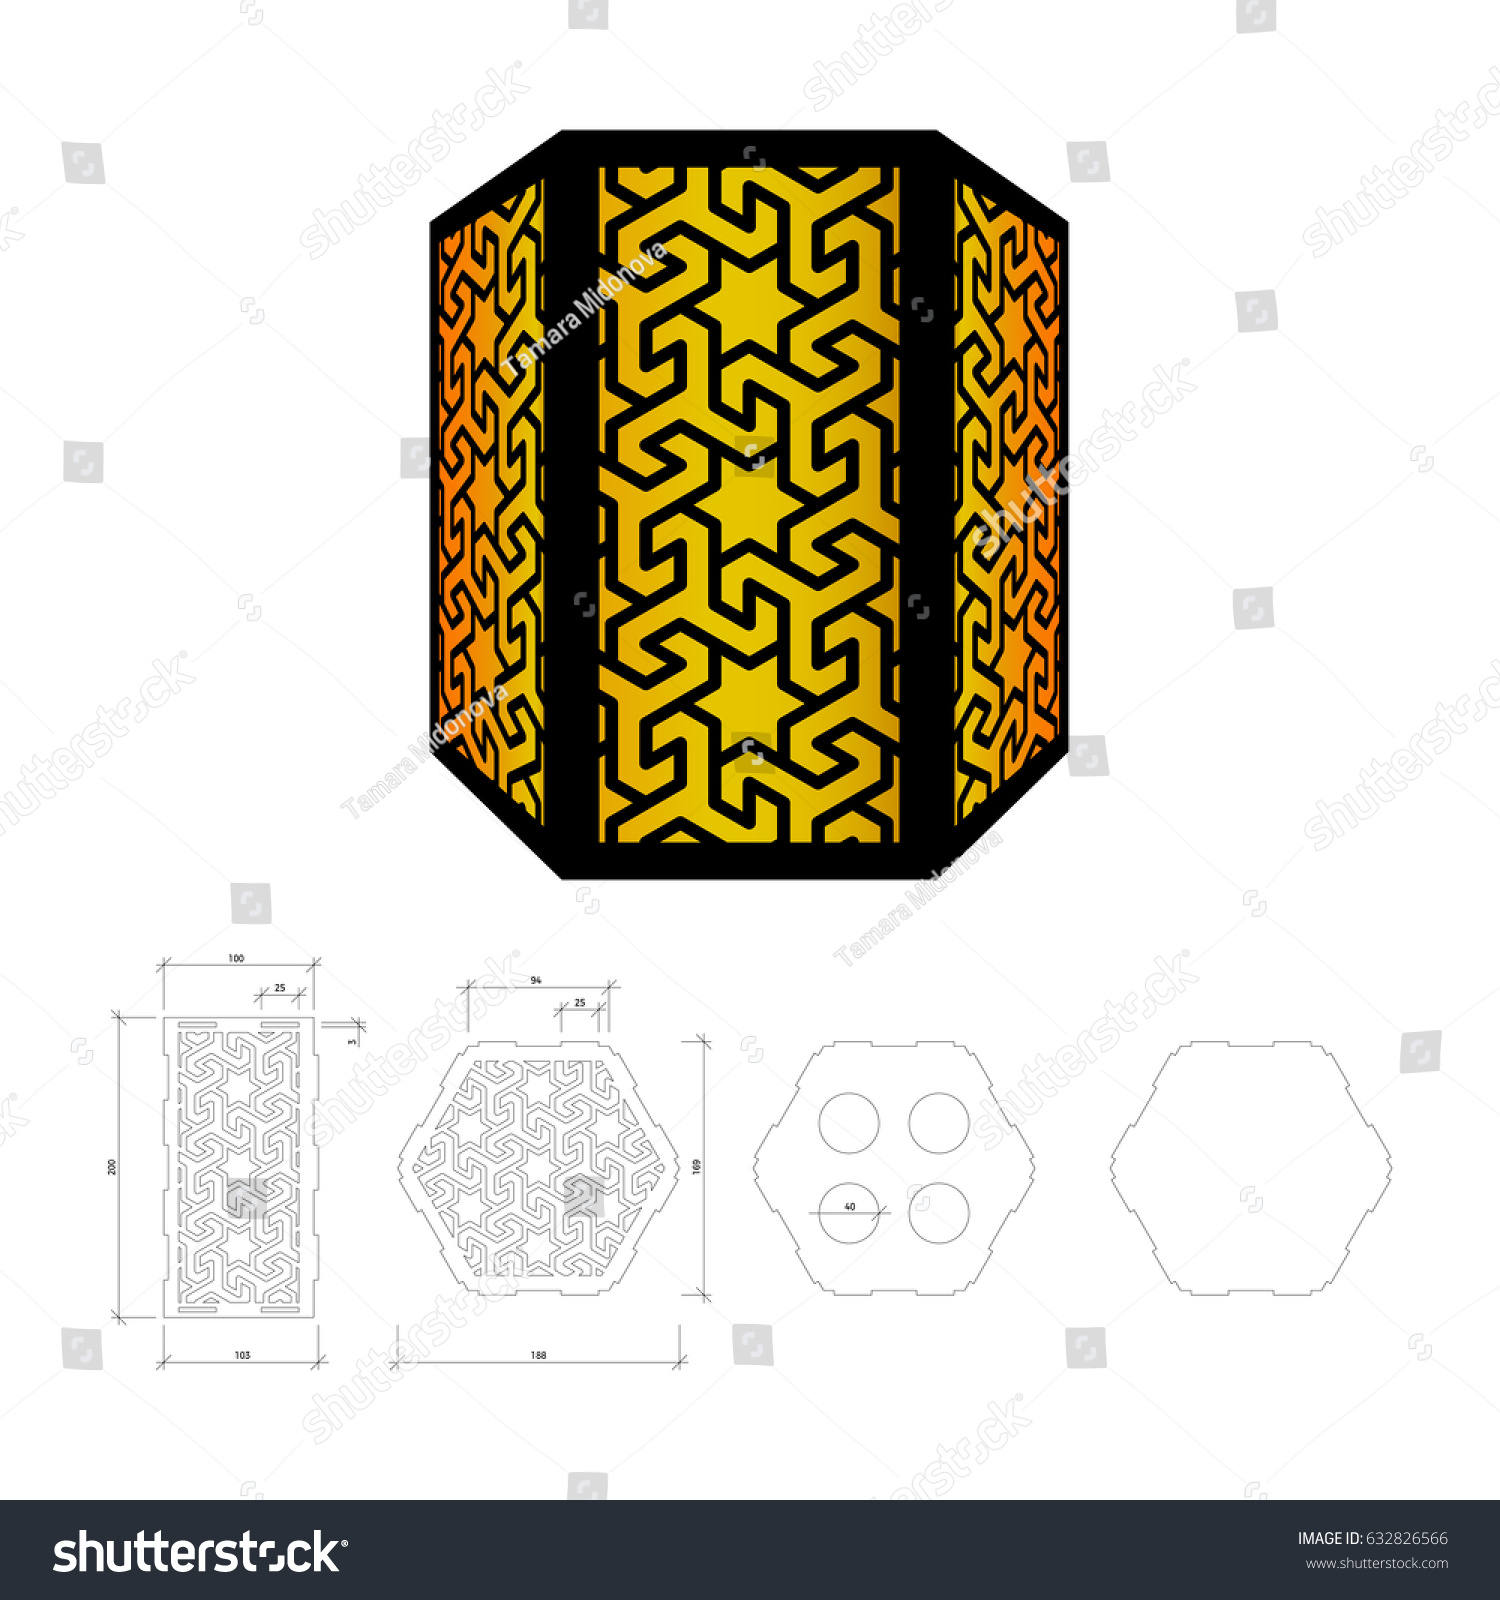 Cut out template lamp candle holder stock vector 632826566 cut out template for lamp candle holder lantern or chandelier plywood 3 mm arubaitofo Gallery